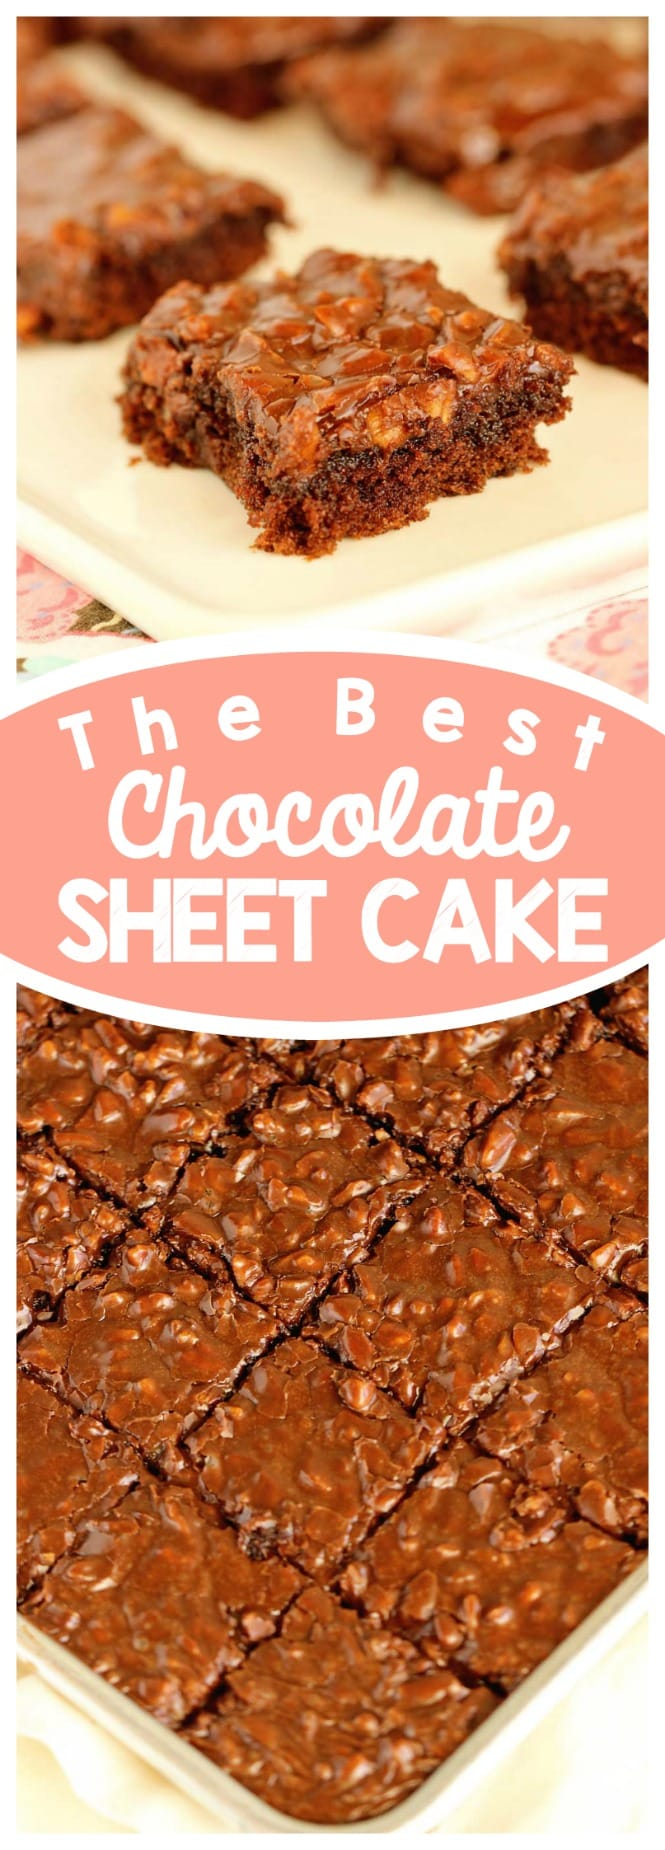 Best Chocolate Sheet Cake Recipe - This homemade chocolate cake with a homemade chocolate pecan icing is one of the best chocolate desserts ever!  There's nothing better than an old-fashioned recipe like this one!